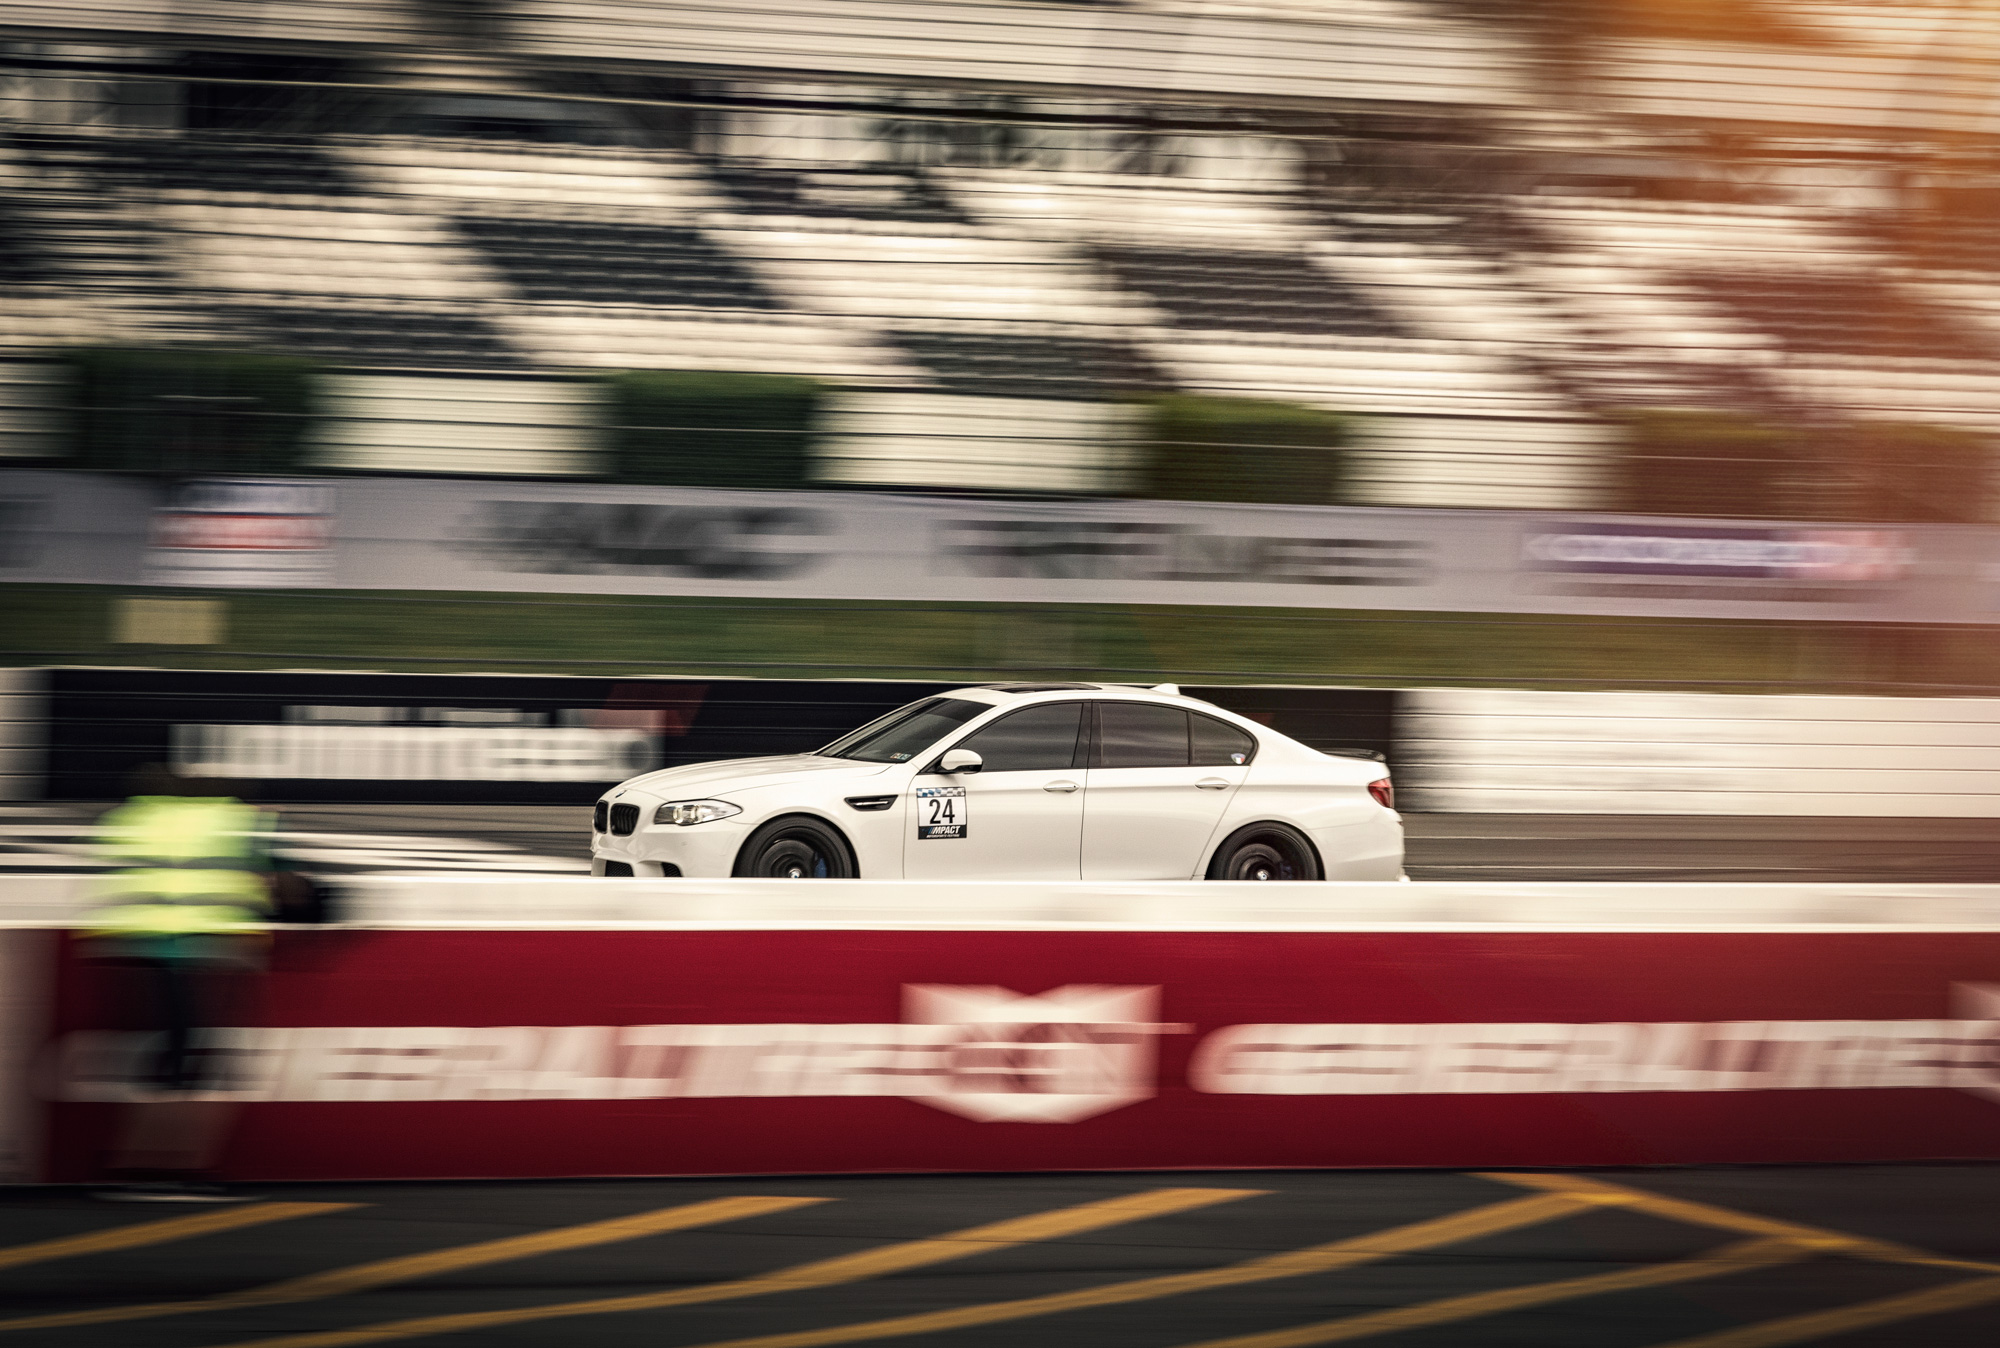 F10 in motion